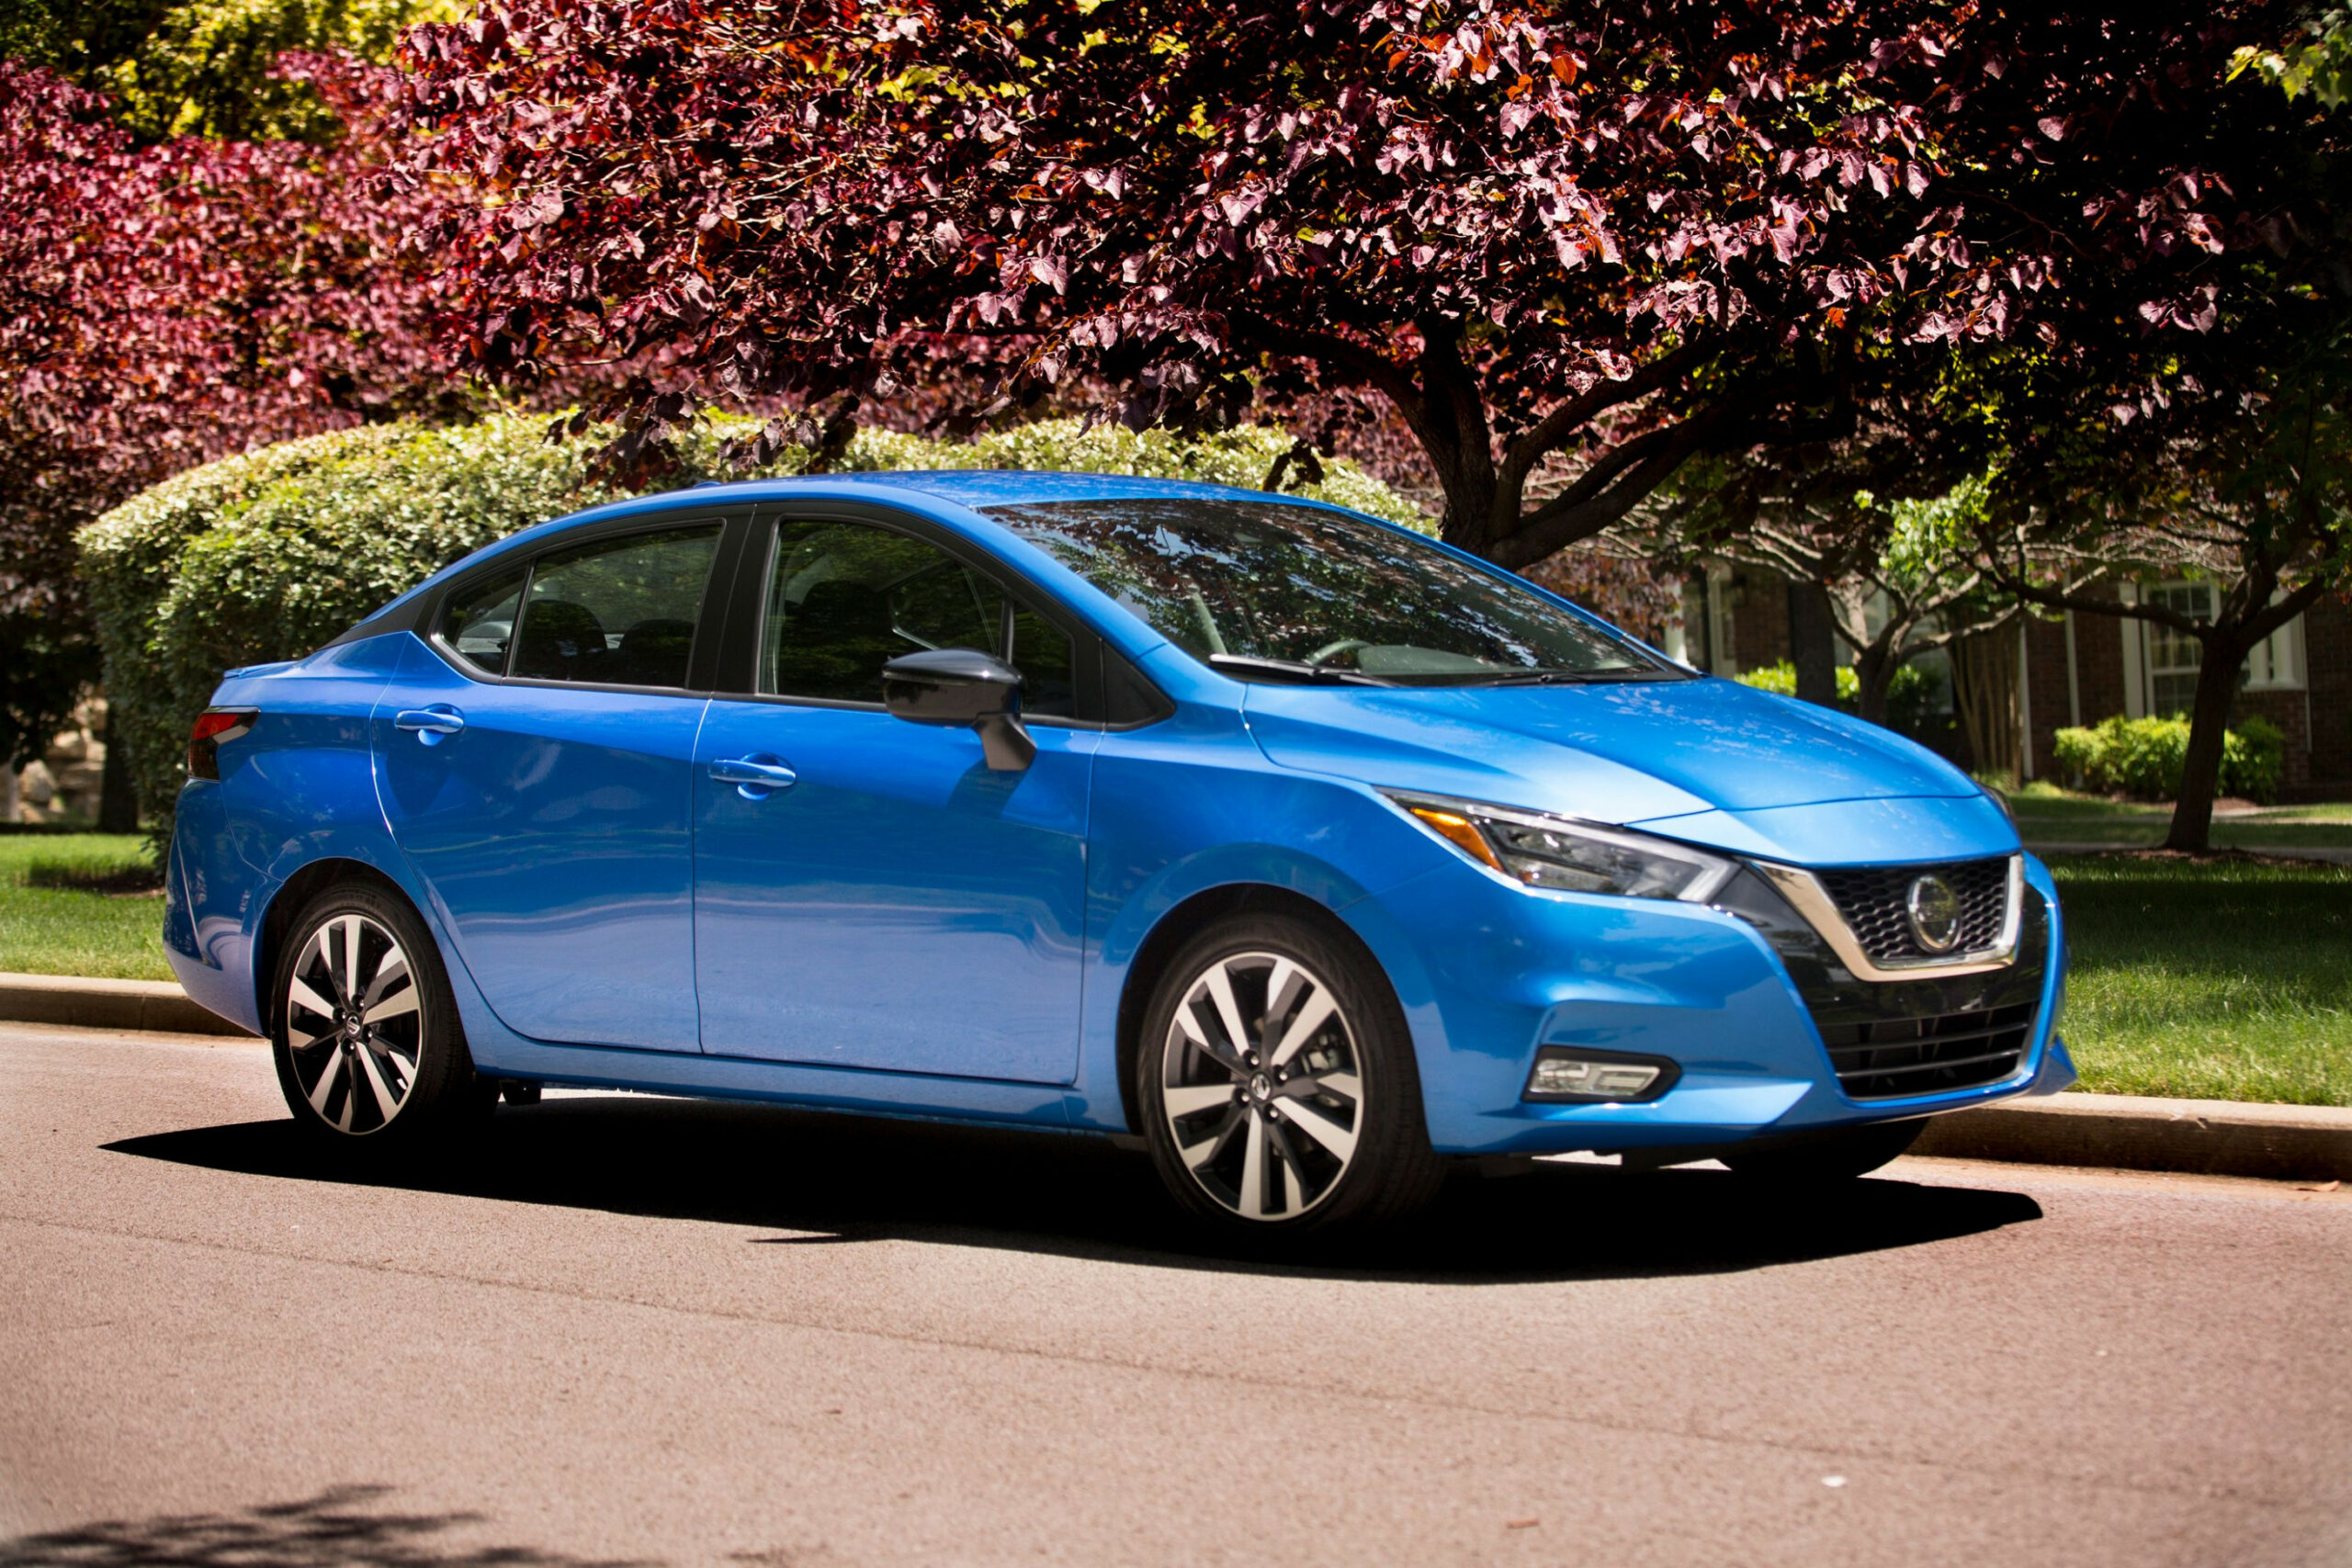 Performance Nissan Versa 2022 Price